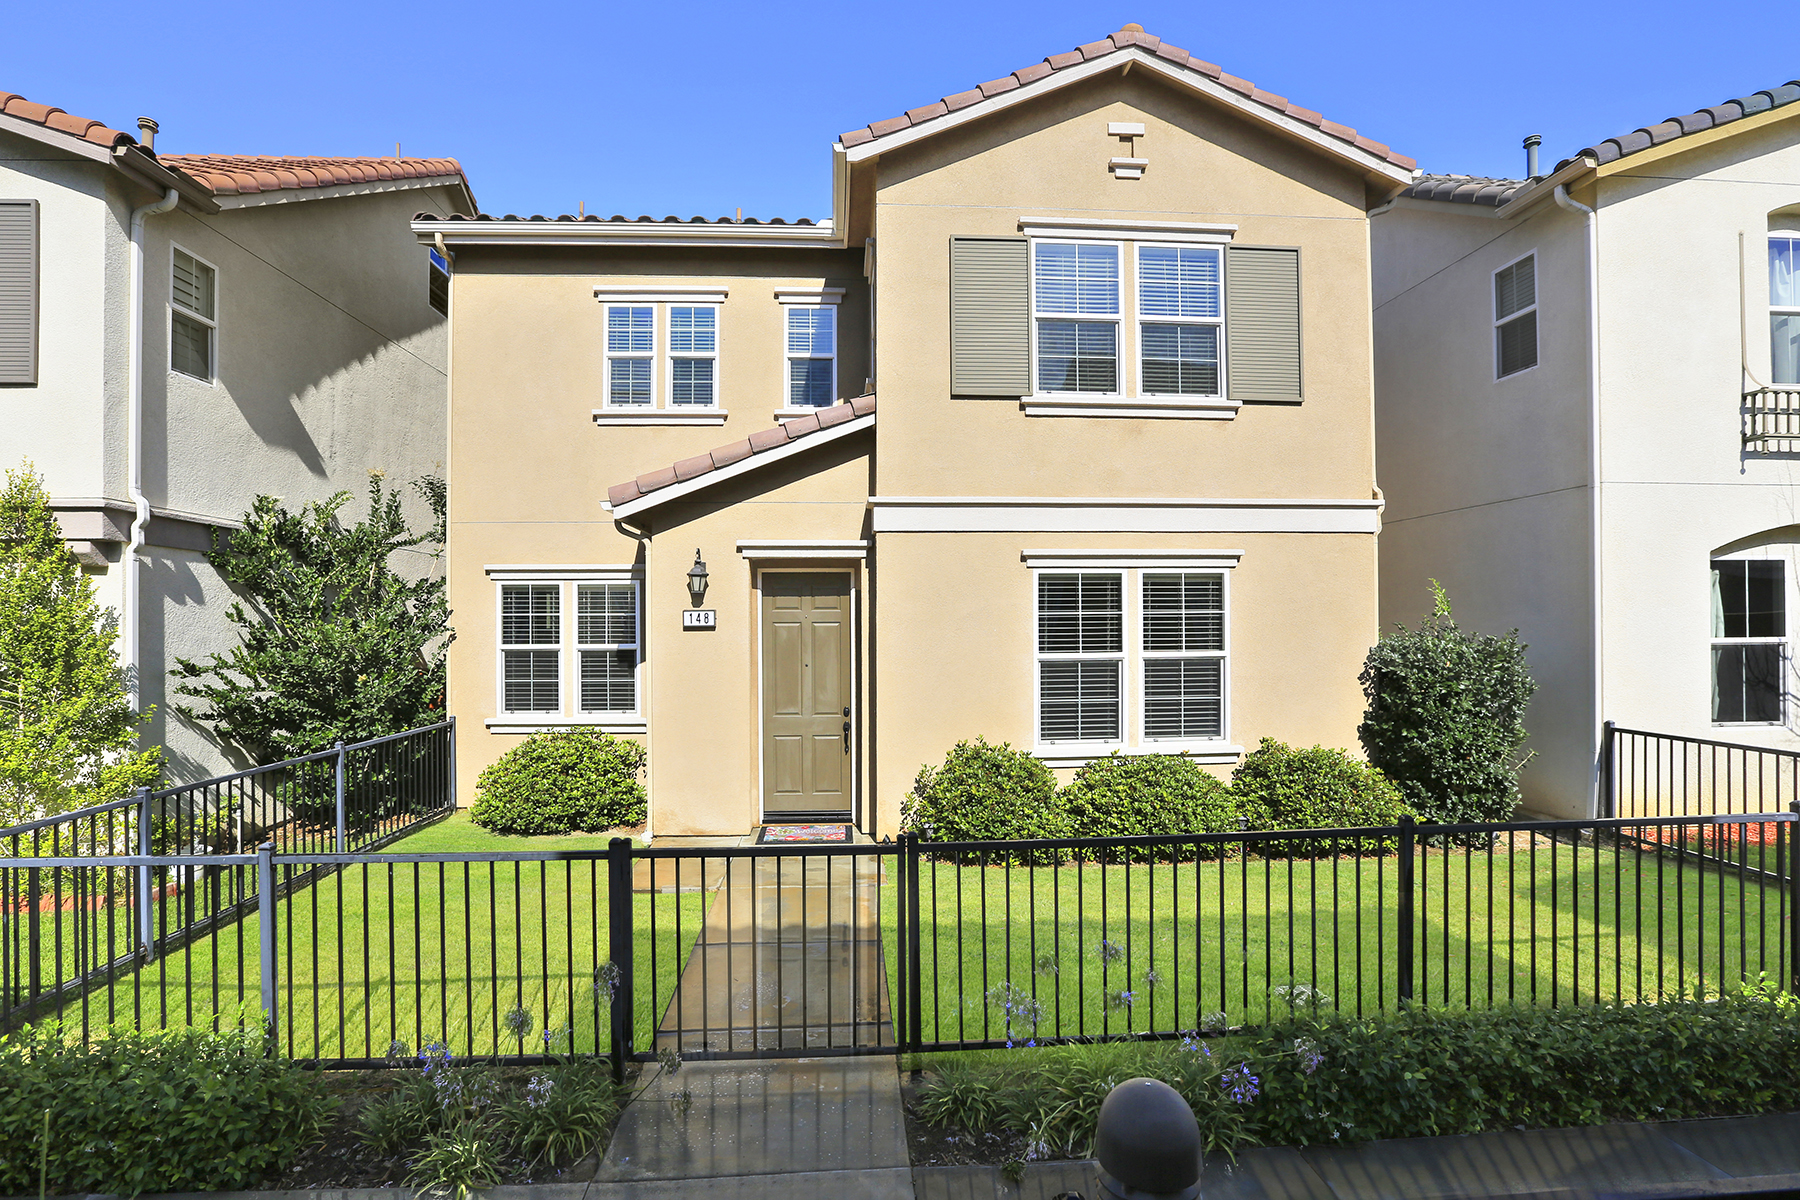 Condominium for Sale at 148 Tiger Lane Placentia, California 92870 United States